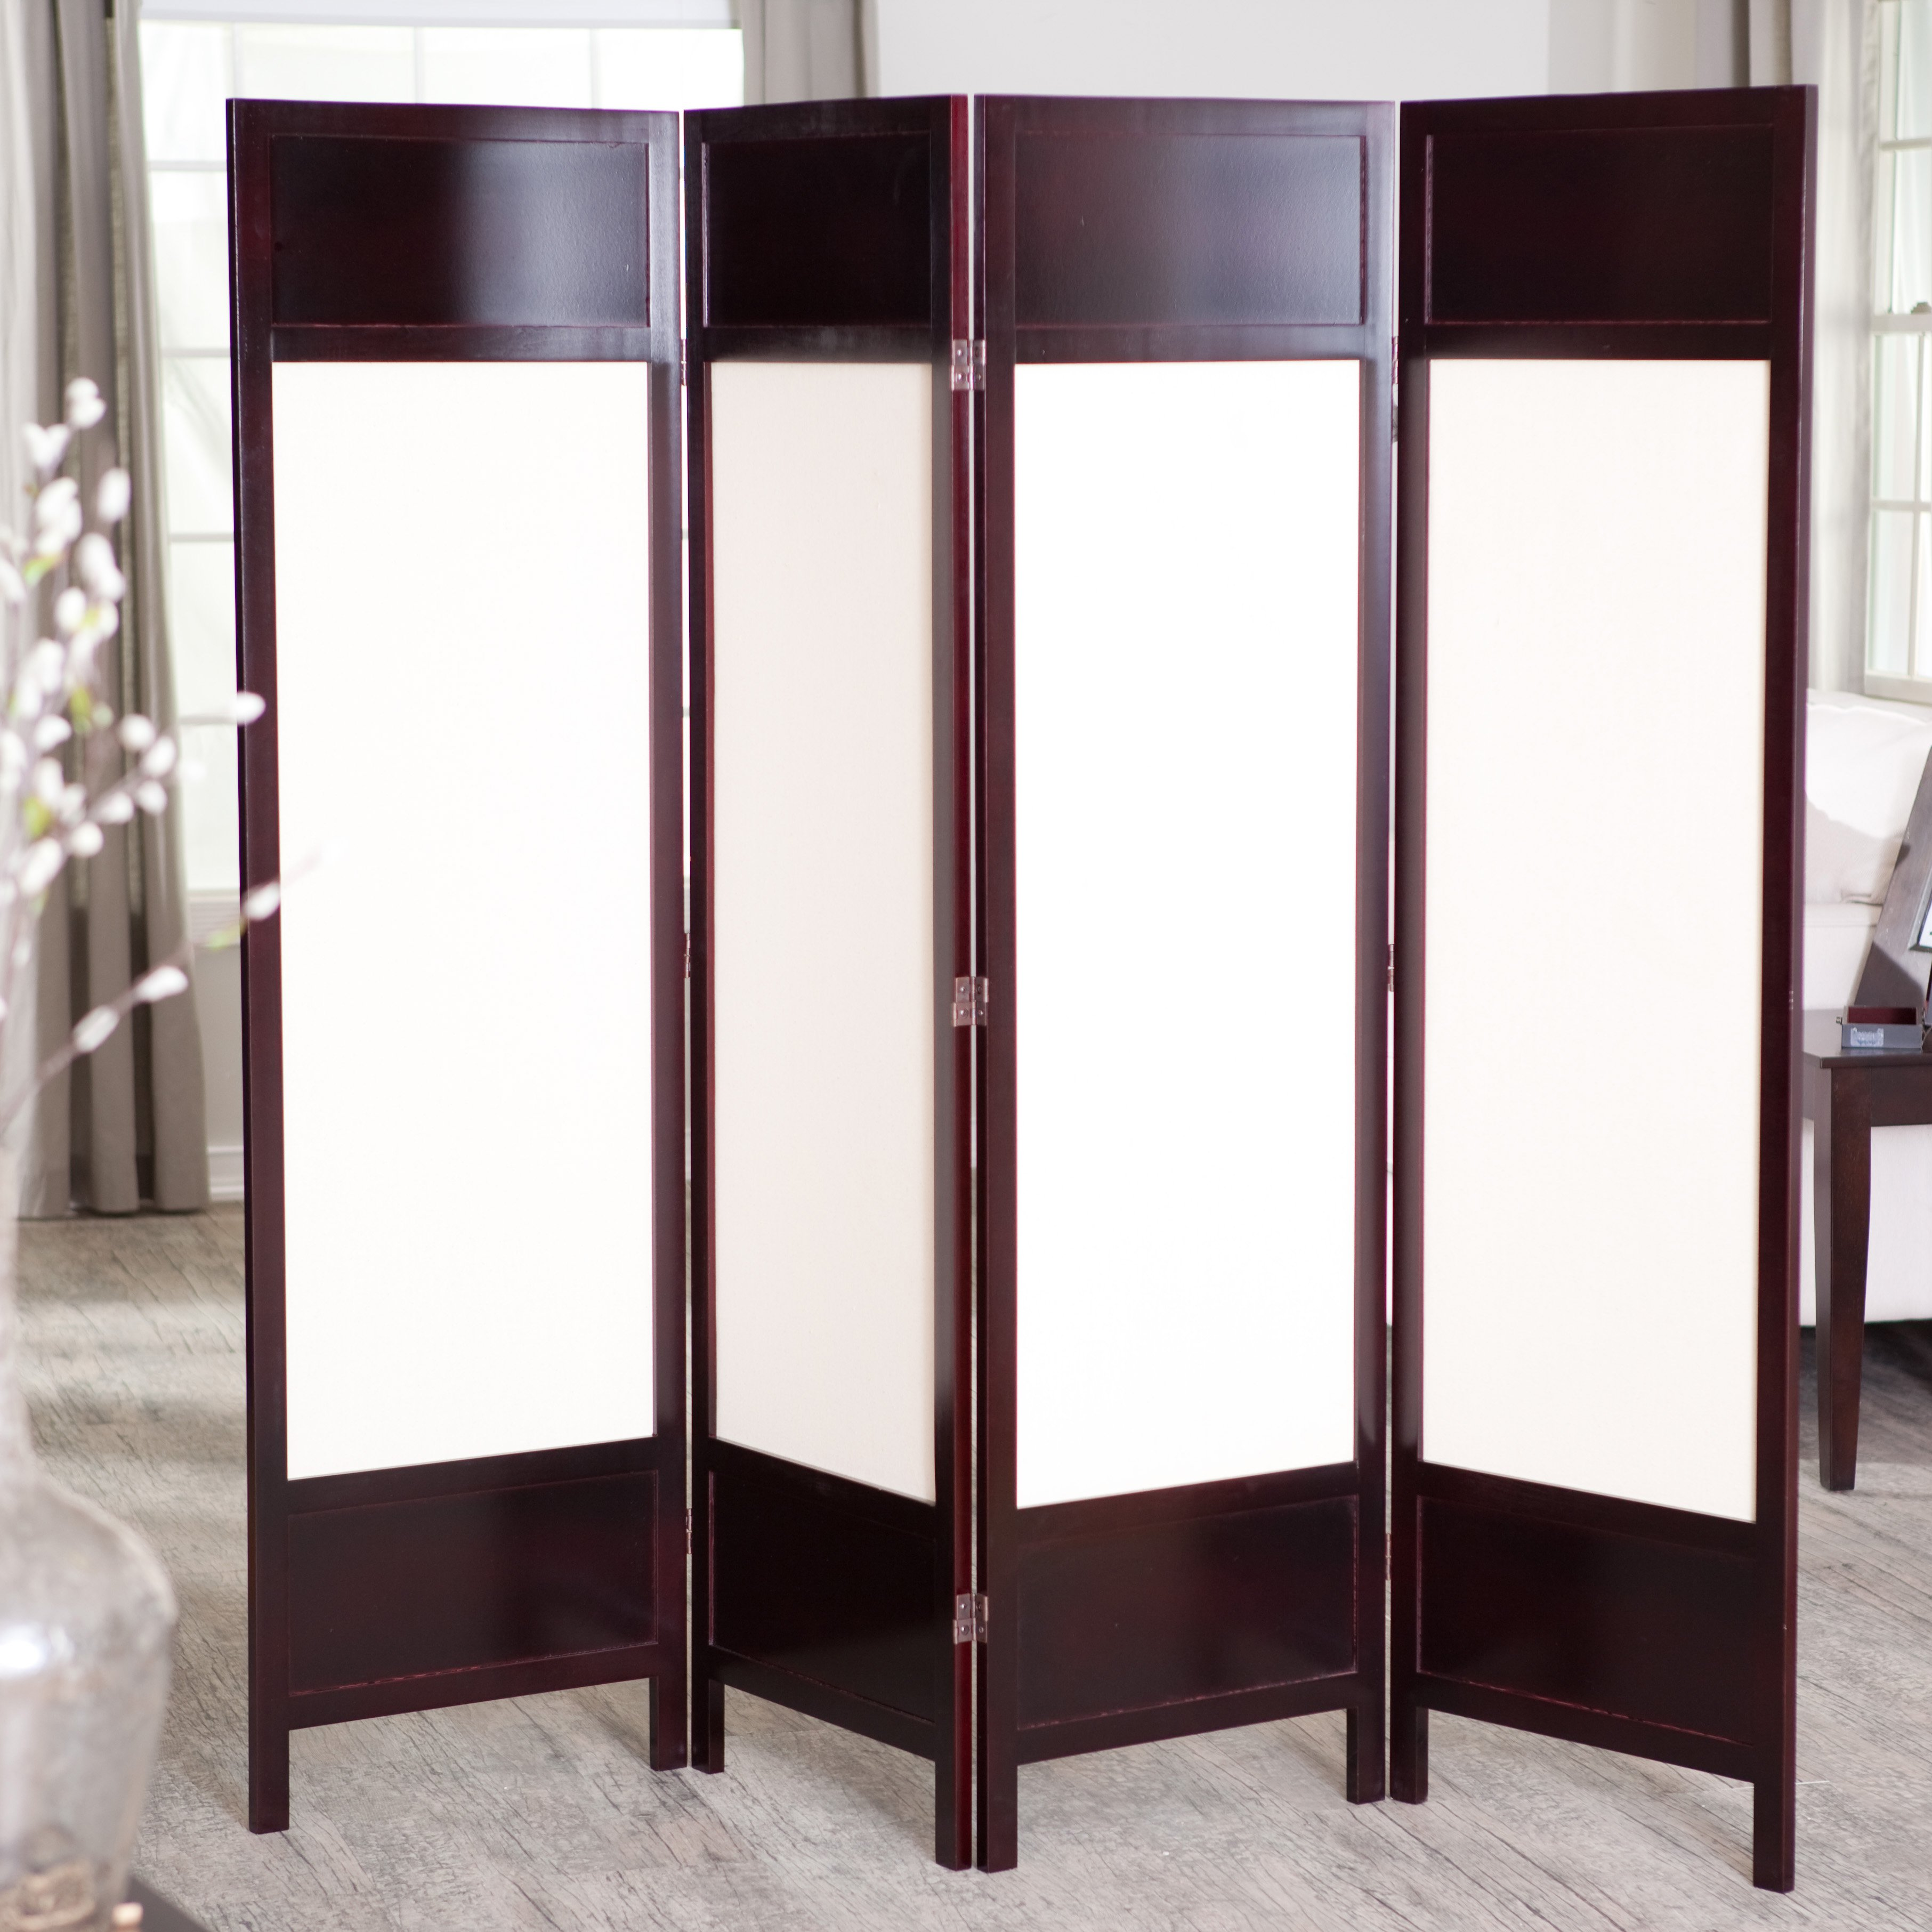 Room Dividers.com Part - 42: Griffin Canvas 4 Panel Room Divider - Rosewood - Walmart.com